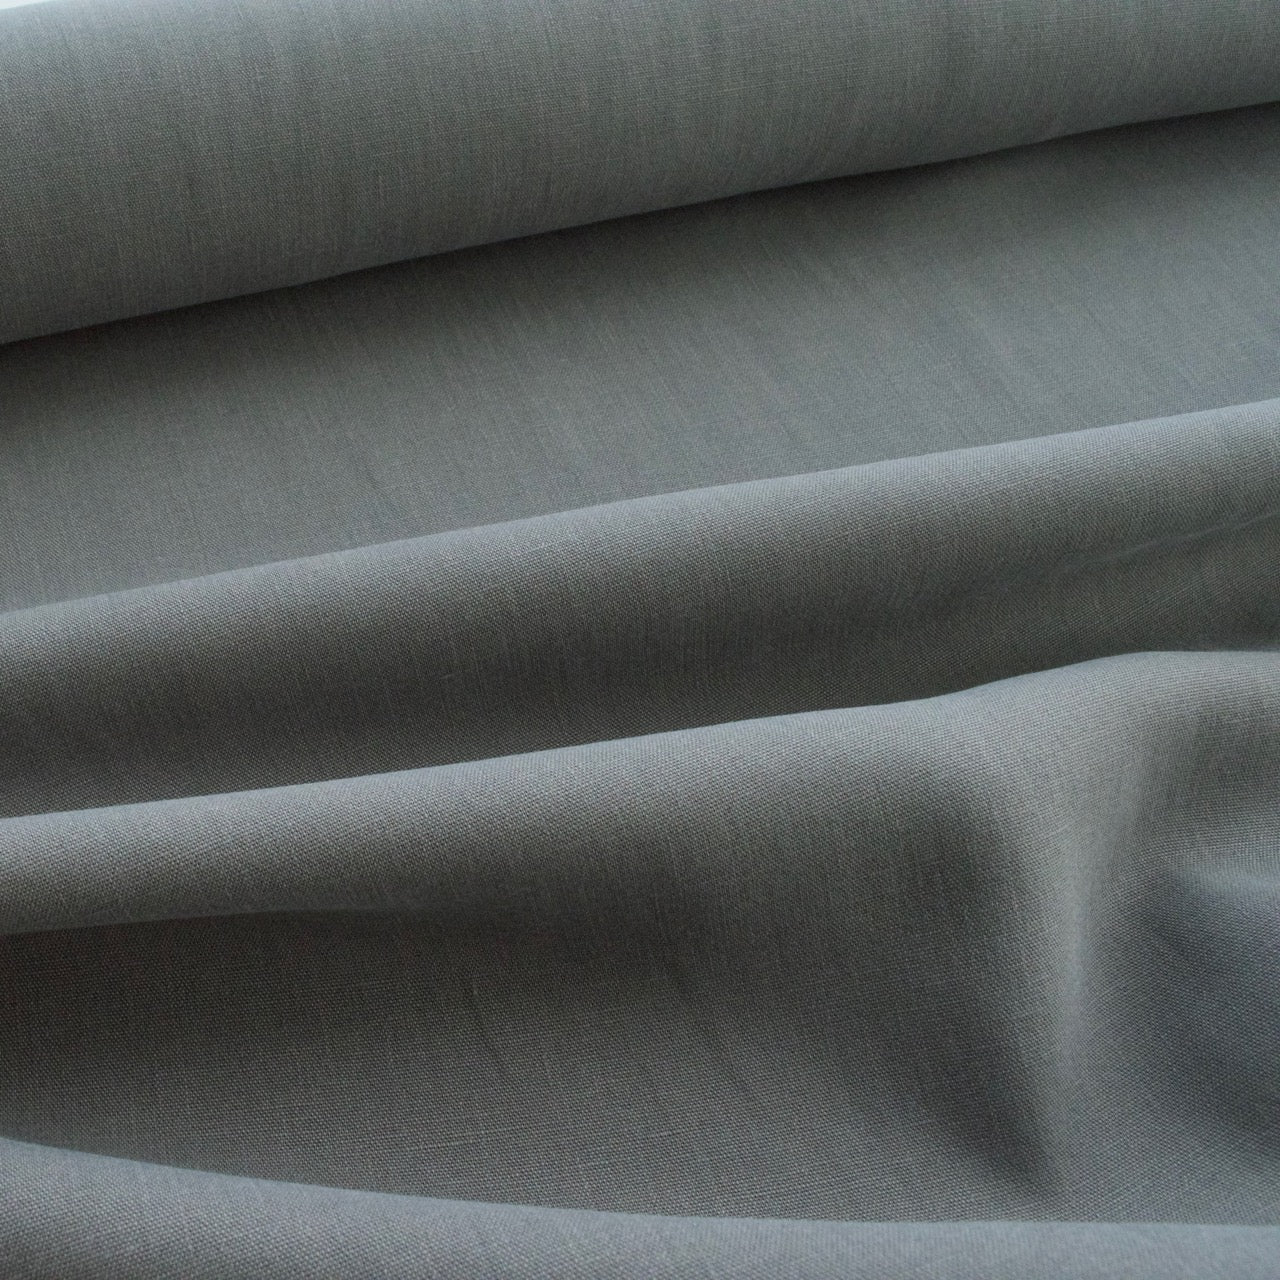 Tencel Linen - Grey Taupe - MaaiDesign